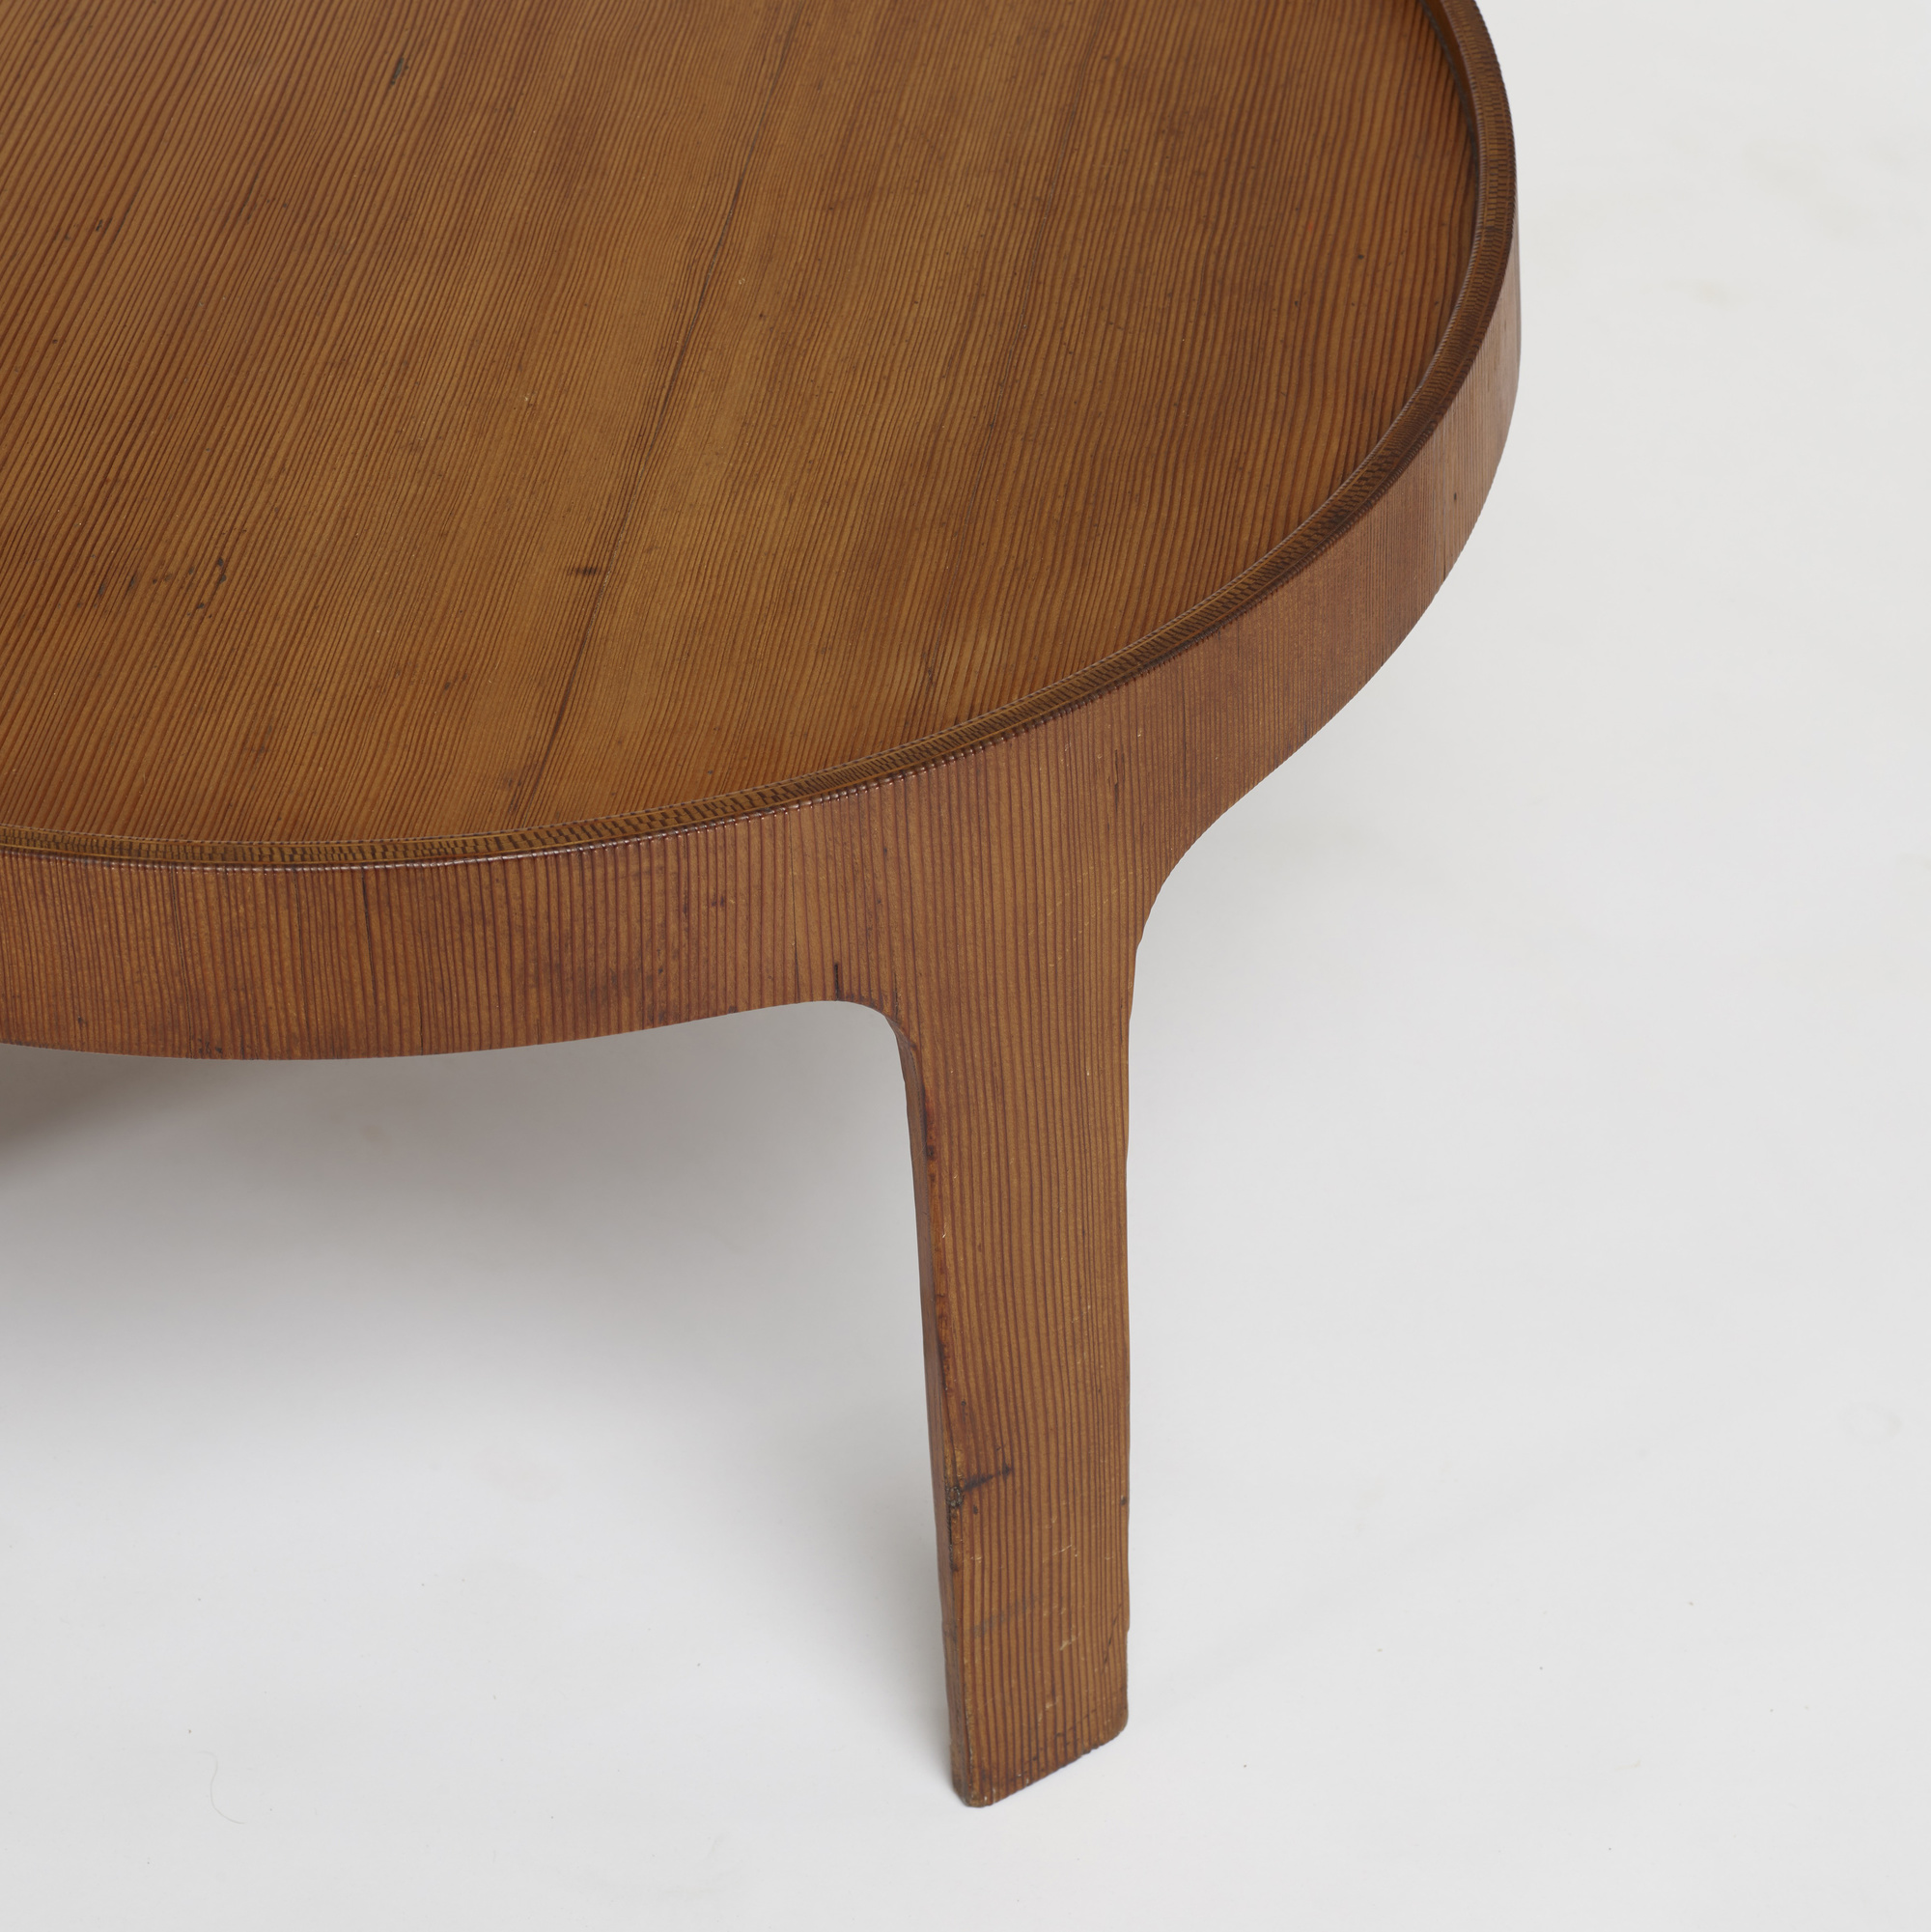 205: Nanna Ditzel / rare coffee table (2 of 3)